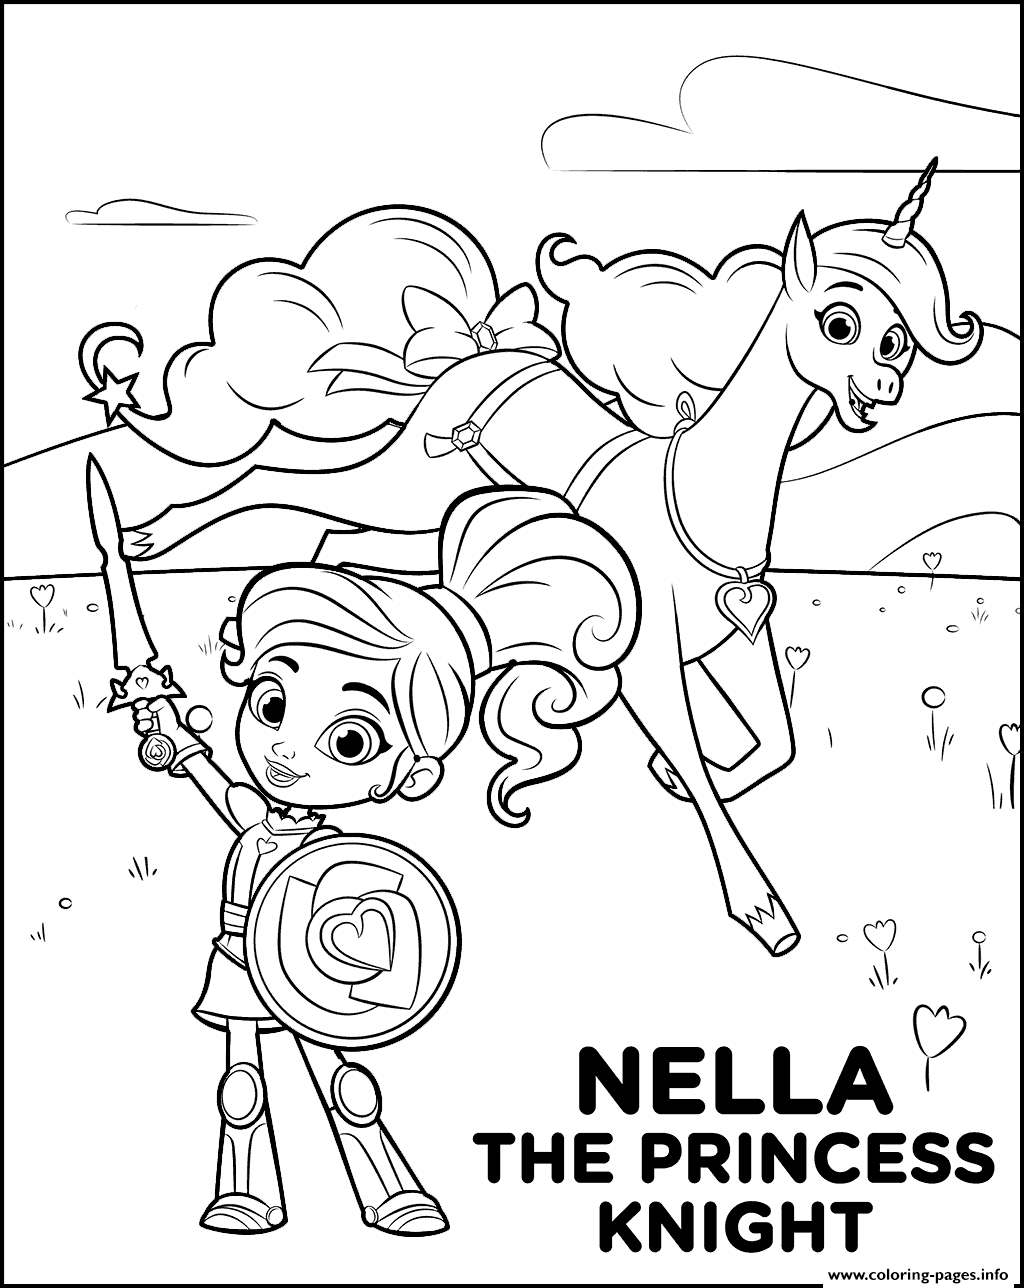 fantasy knights princesses coloring pages - photo#35